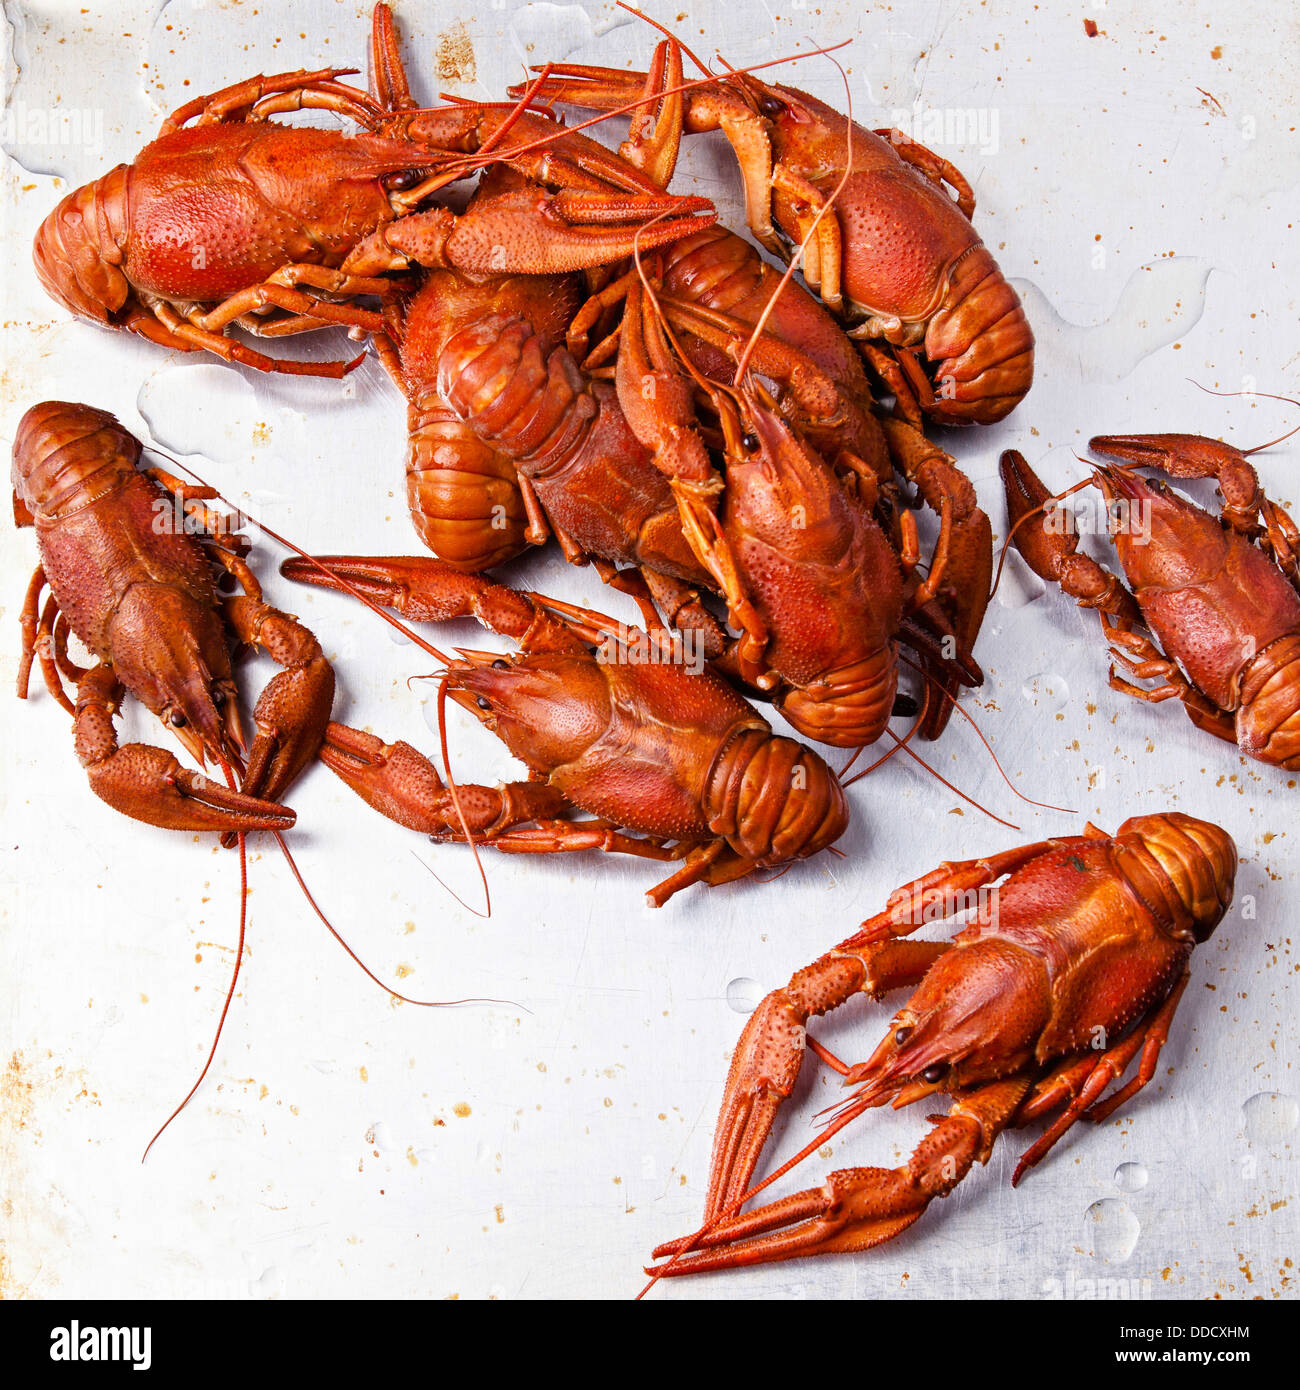 Boiled red lobsters on textured background - Stock Image